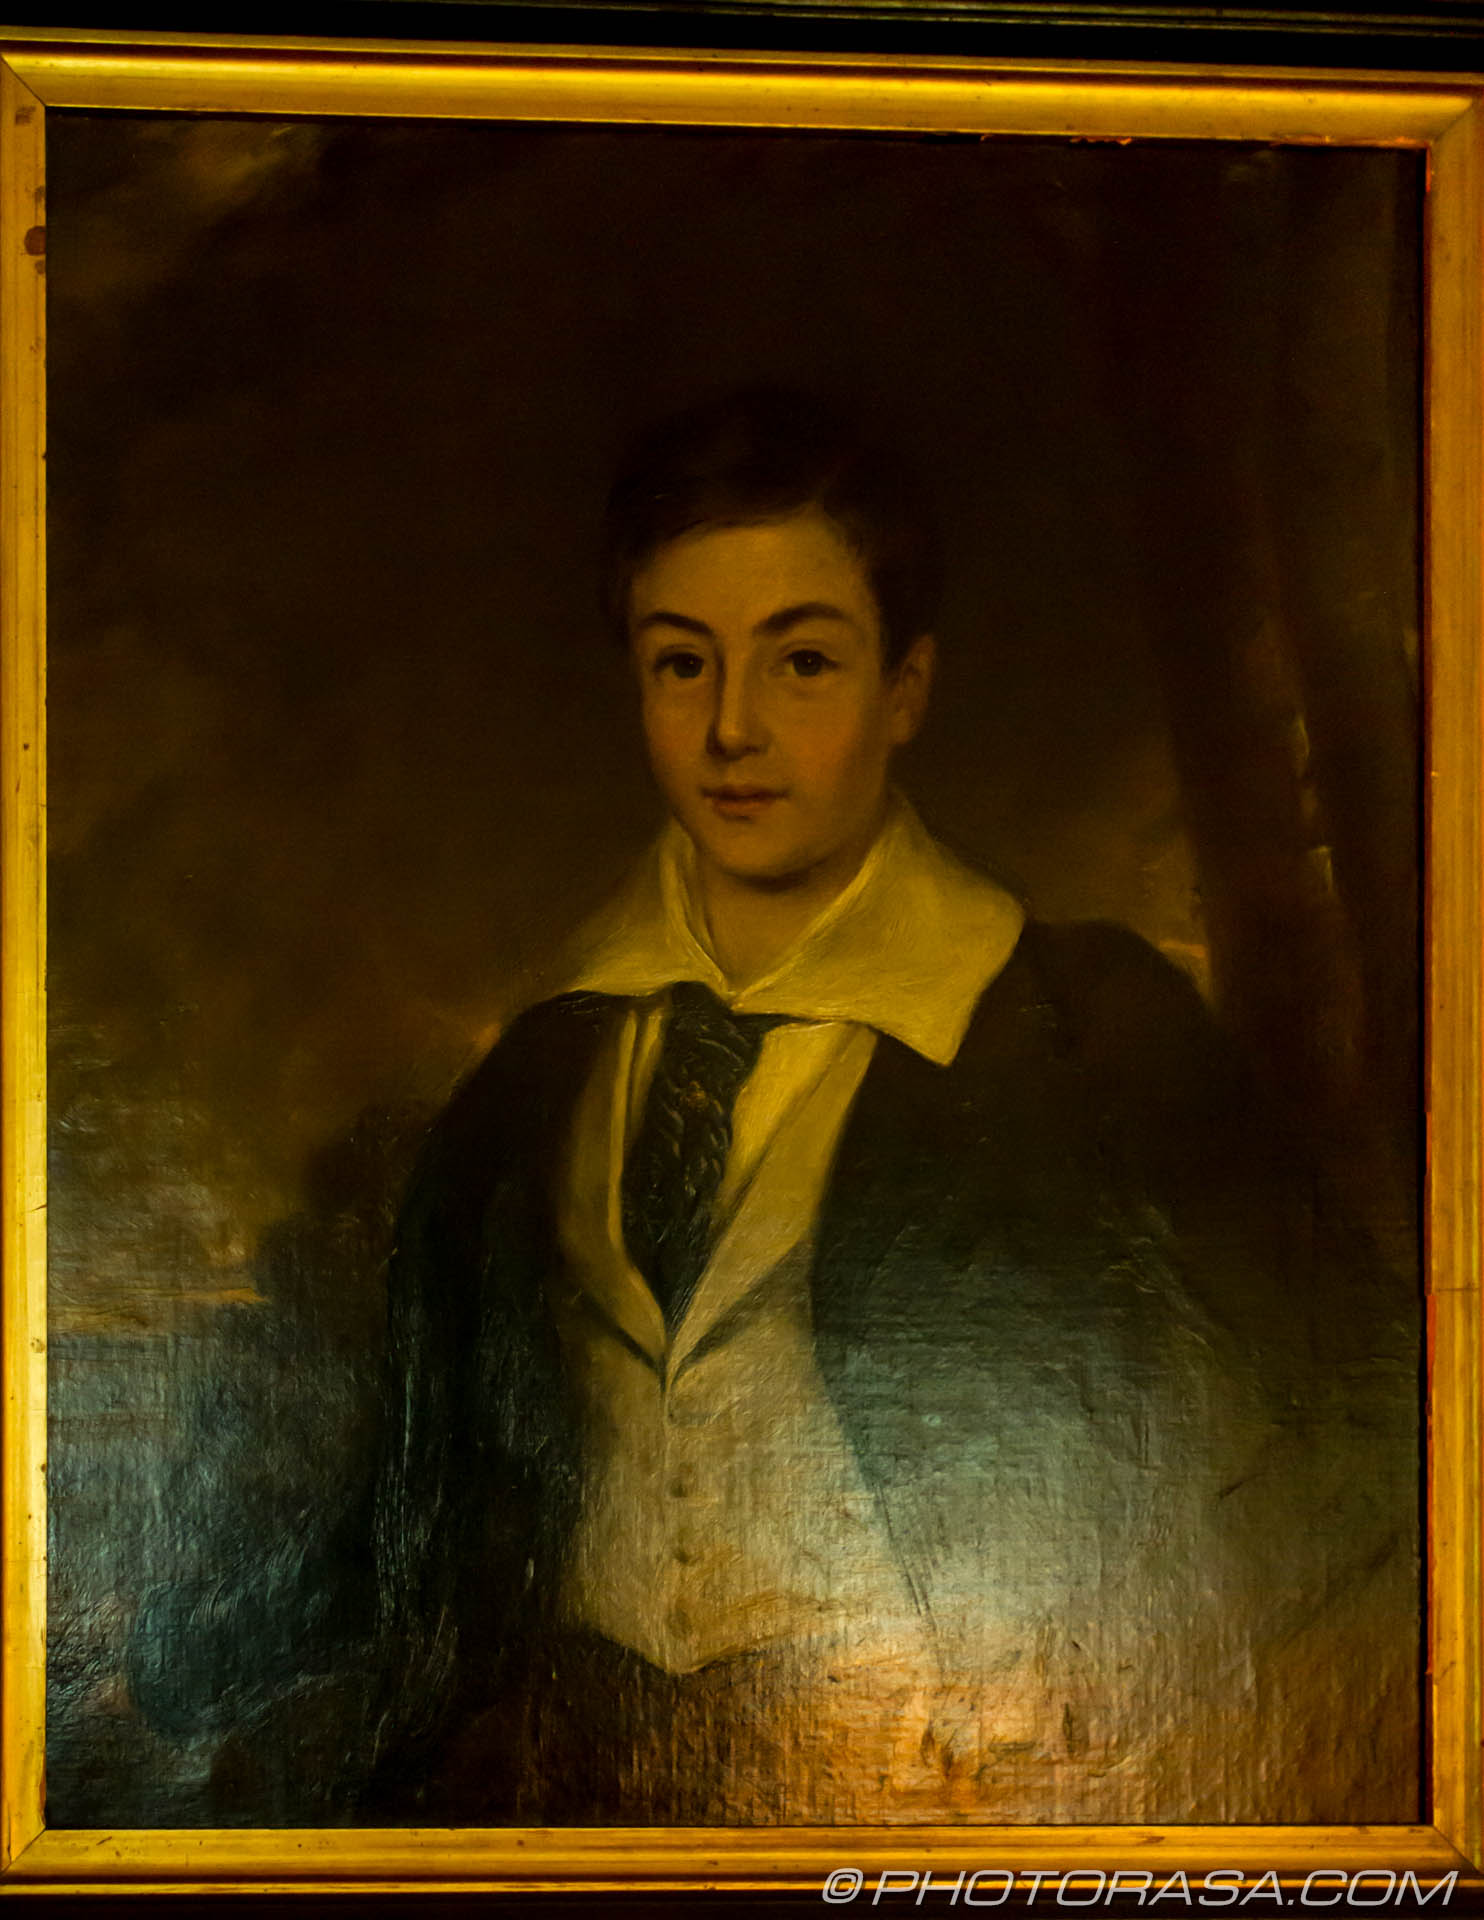 http://photorasa.com/stoneacre-house-paintings/early-georgian-period-painting-of-james-attwood-vallance/